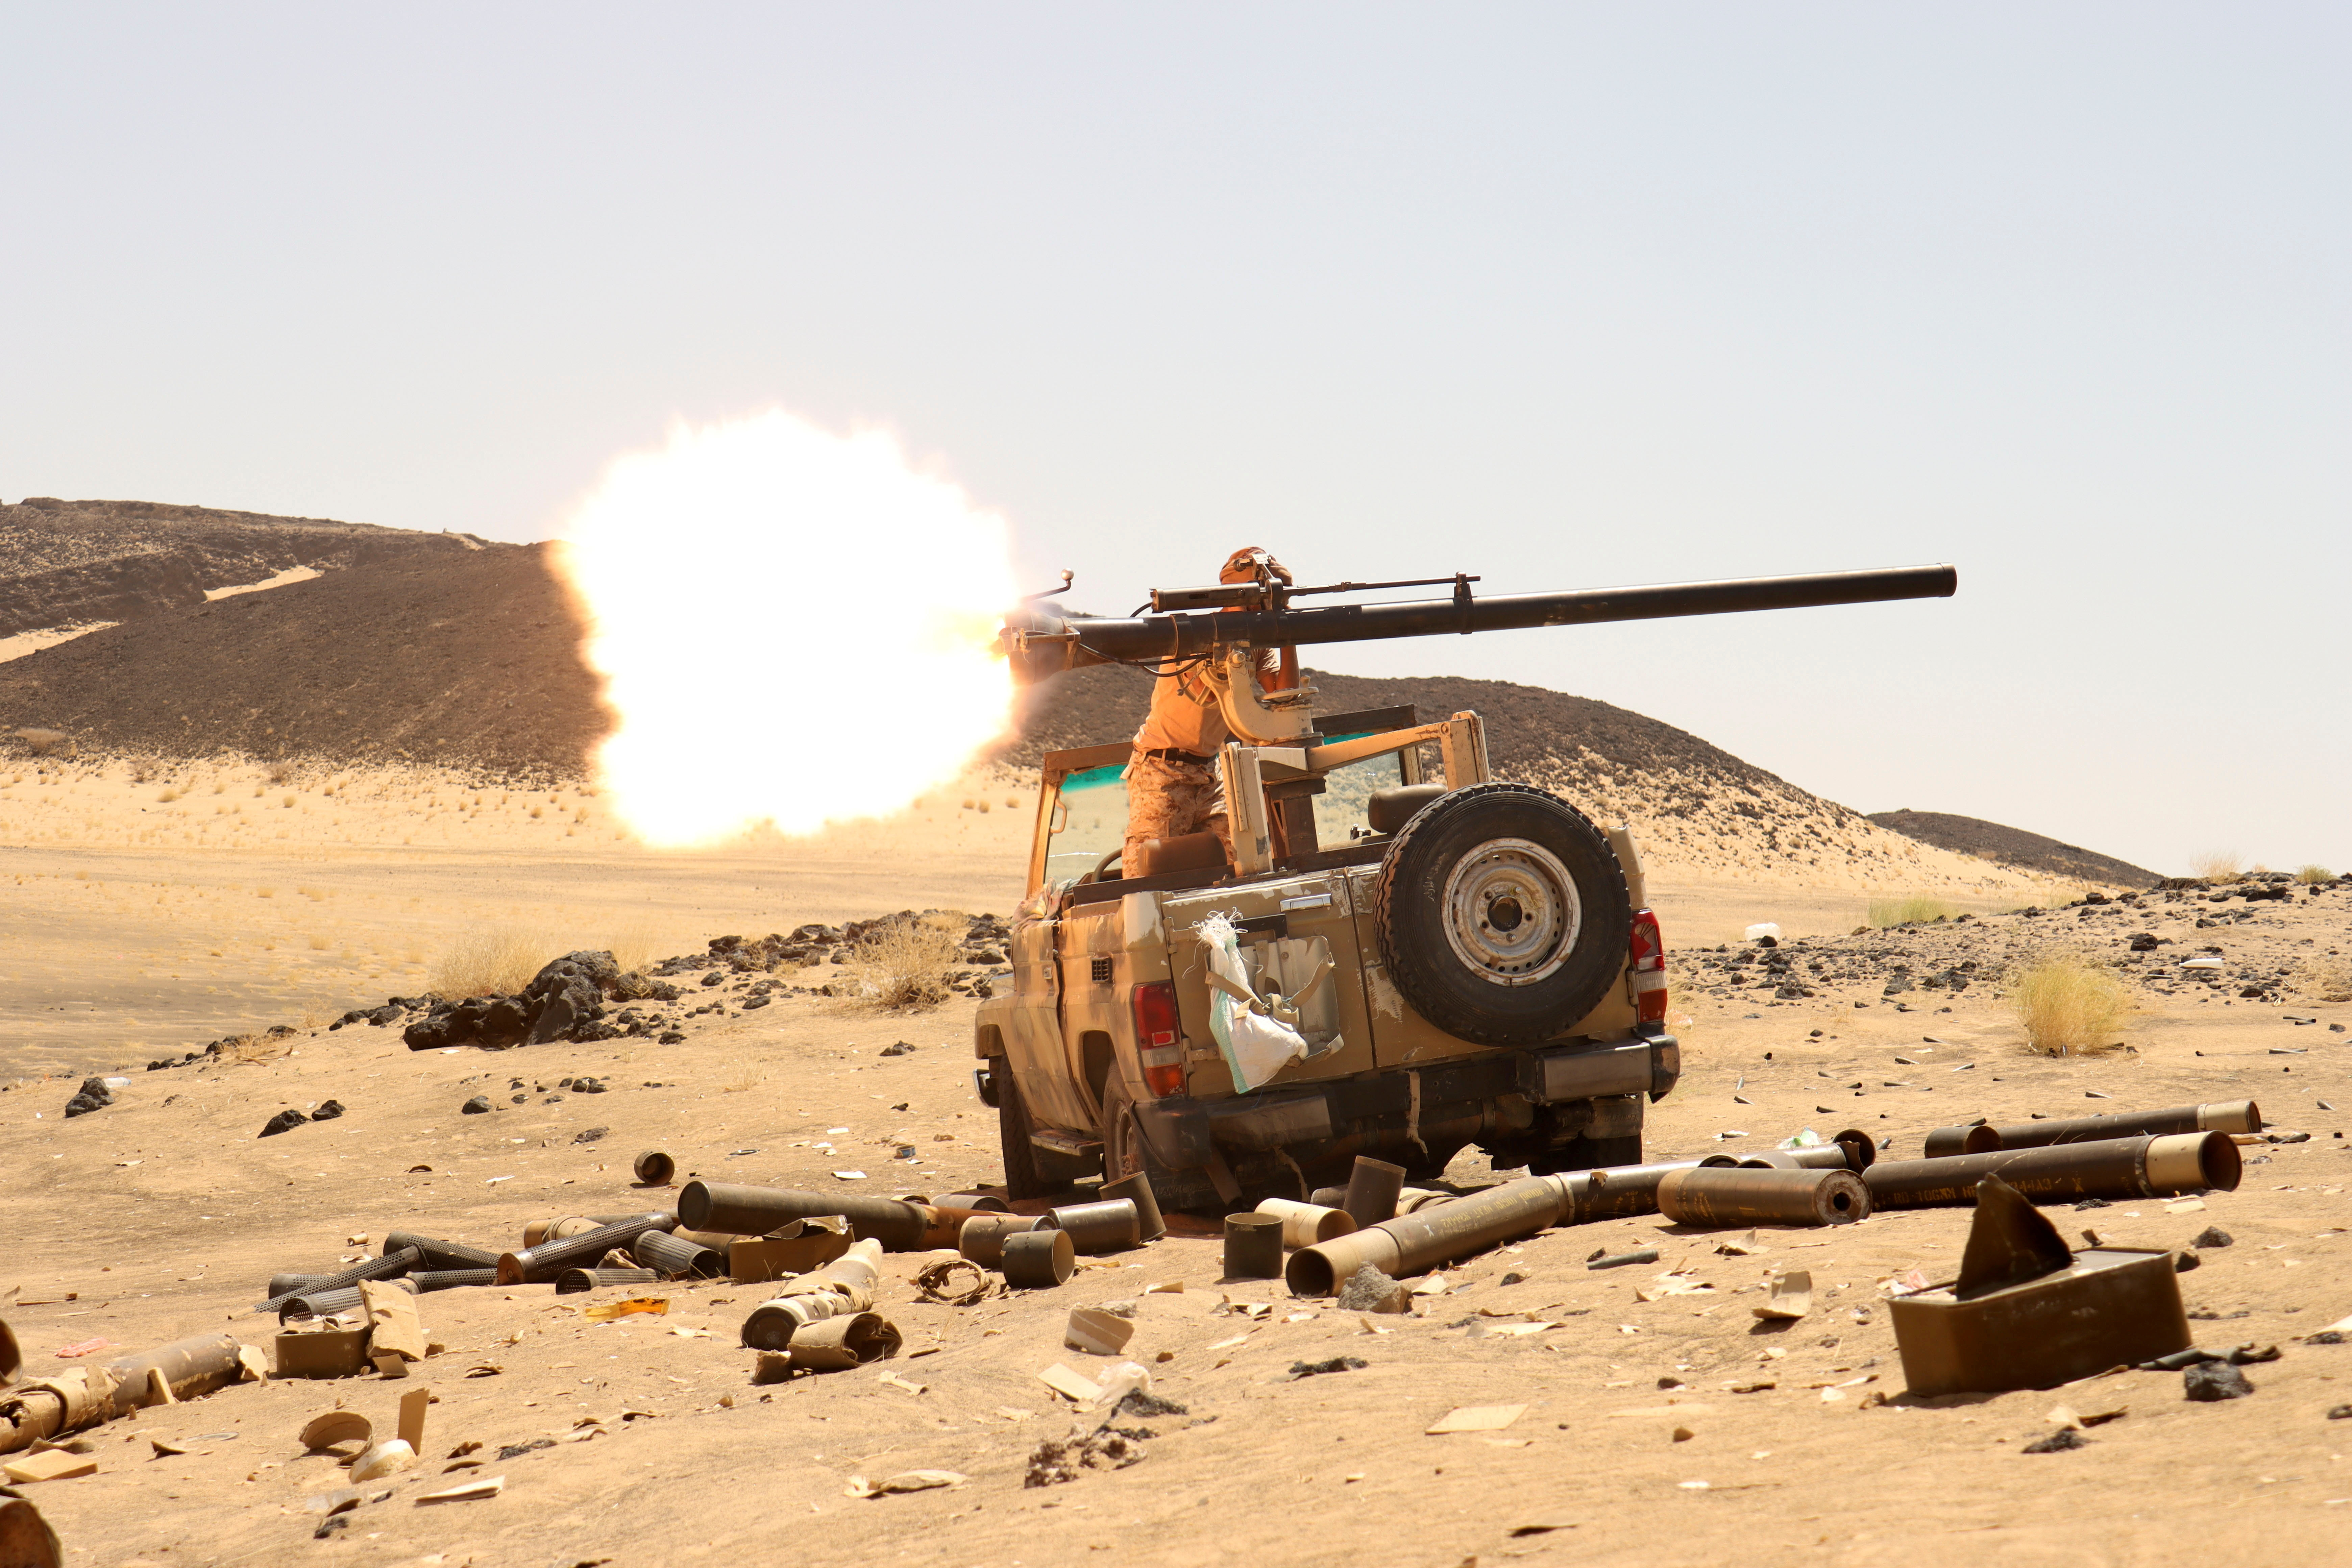 A Yemeni government fighter fires a vehicle-mounted weapon at a frontline position during fighting against Houthi fighters in Marib, Yemen March 9, 2021. REUTERS/Ali Owidha